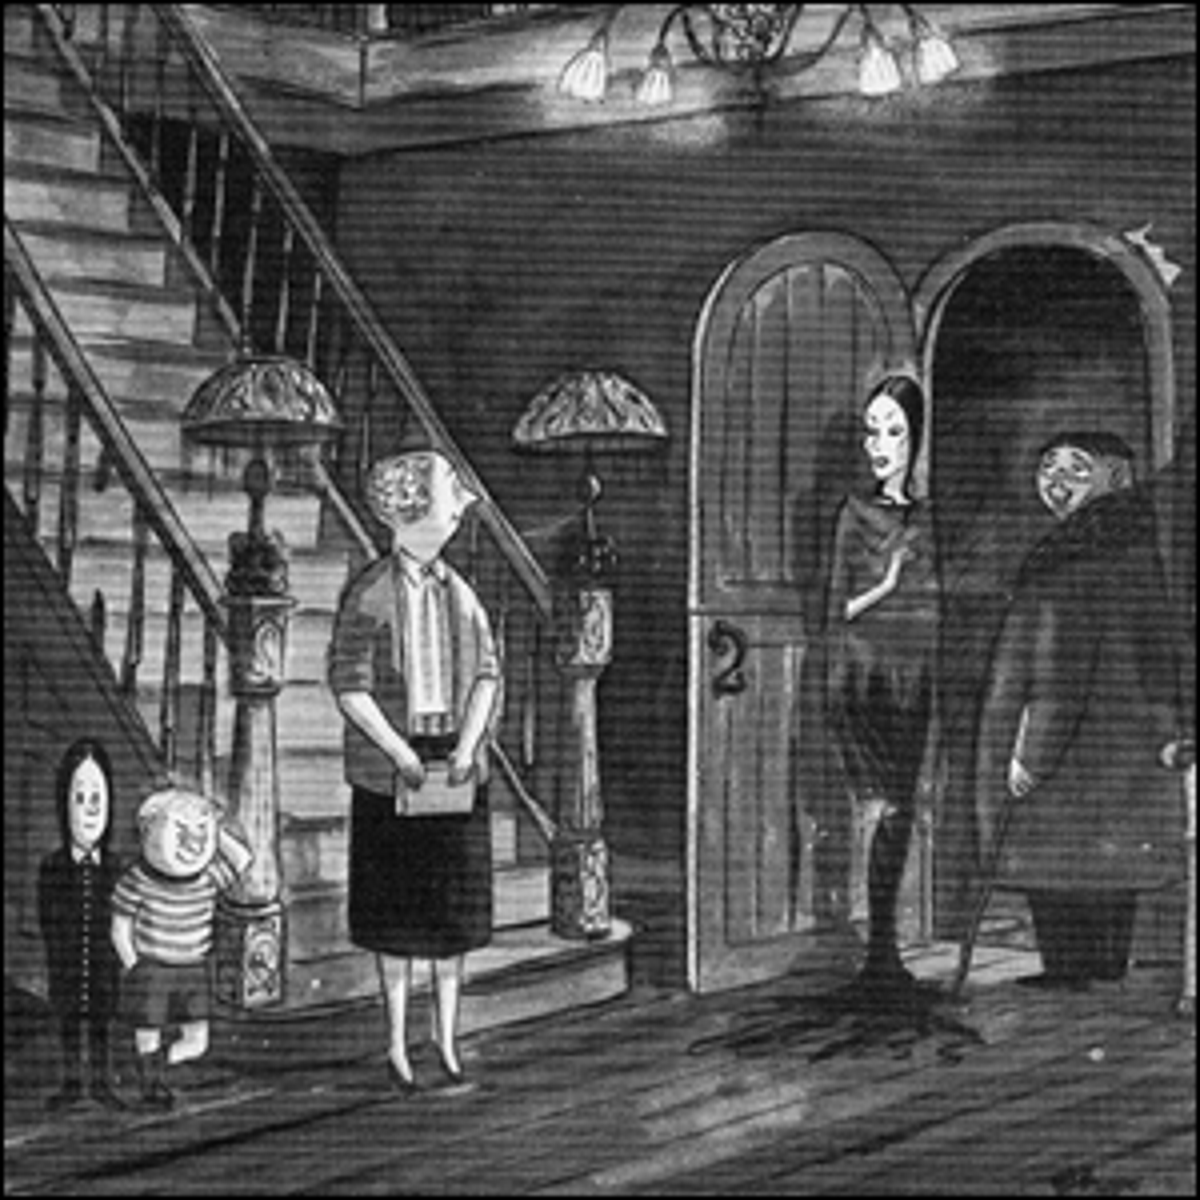 One of the original Addams Family cartoons from The New Yorker.